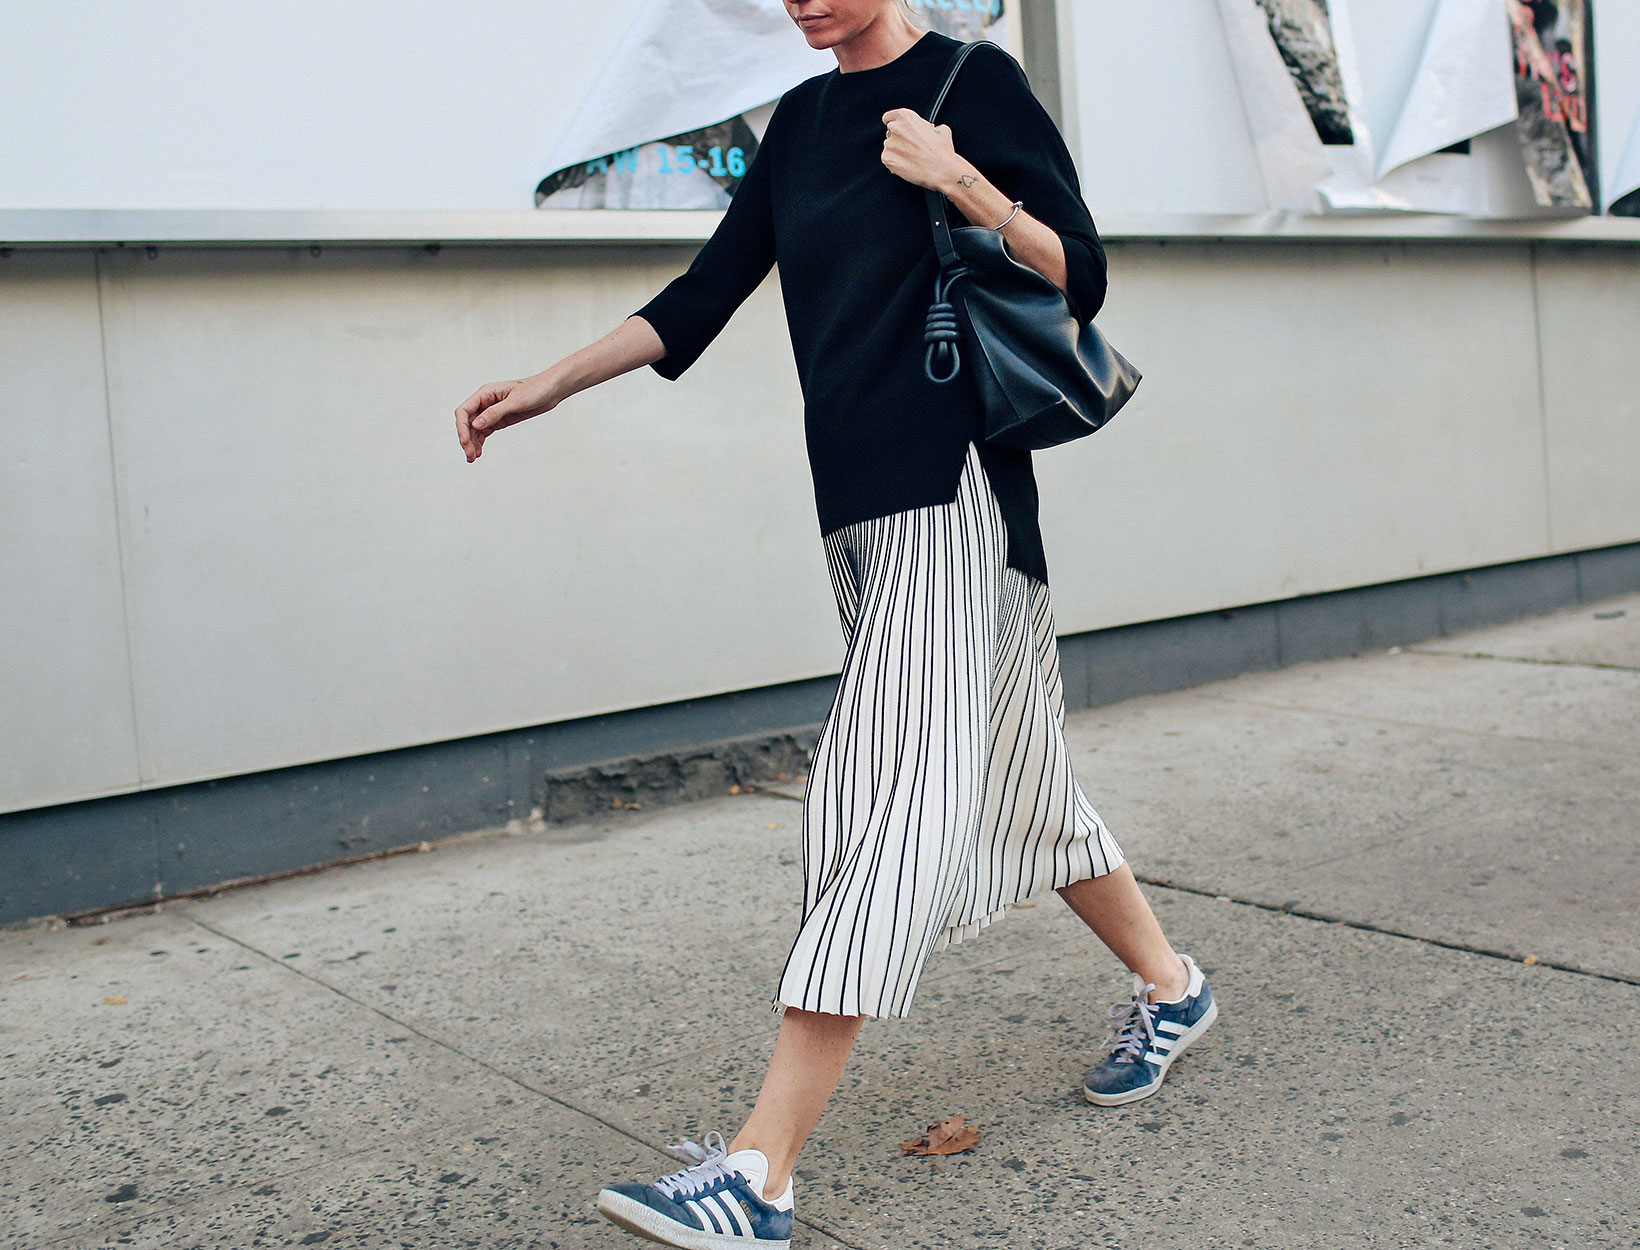 long-skirt-NYFW-STREET-DAY4-8b